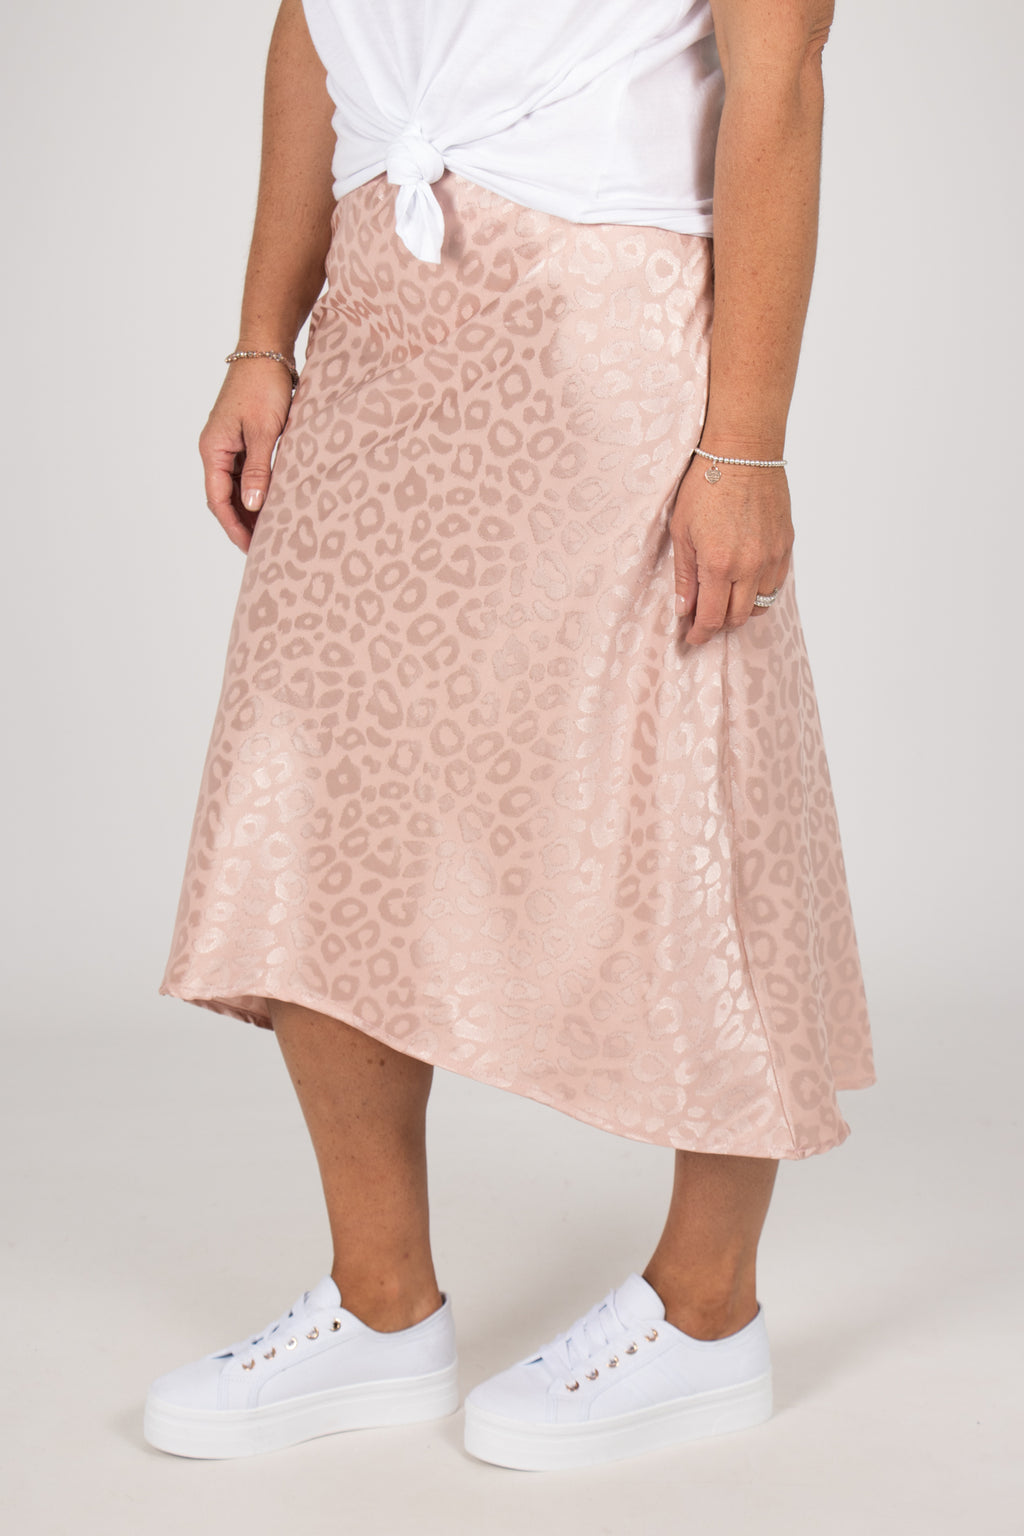 Rani Midi Skirt in Blush